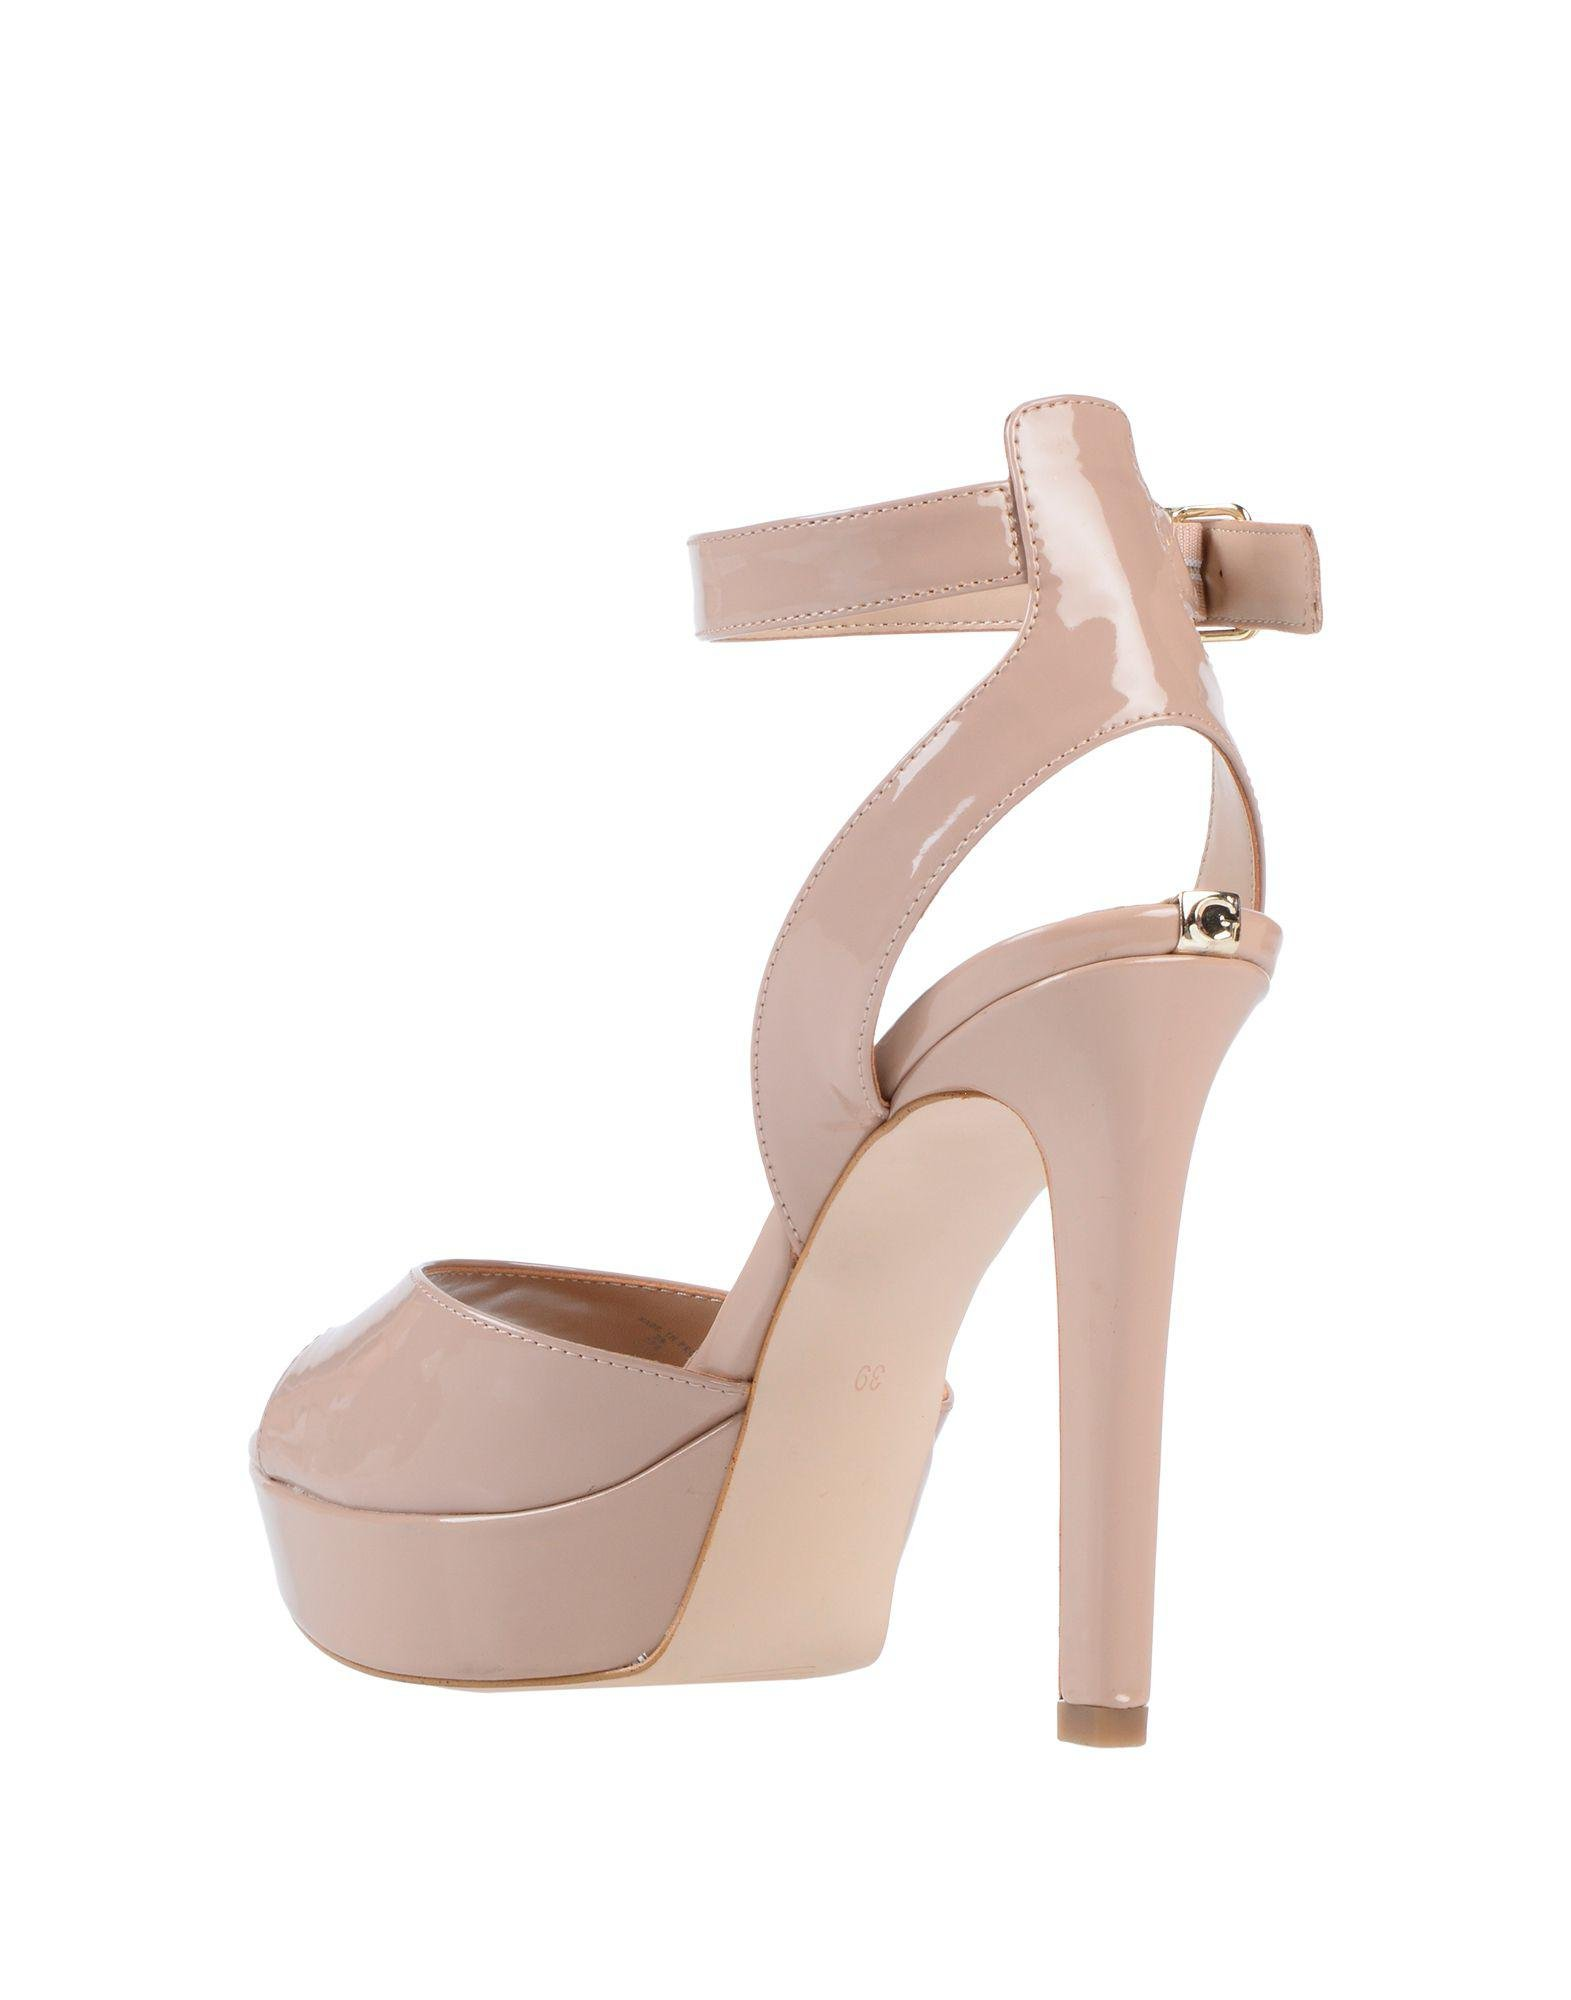 8bb3386352cf Lyst - Guess Sandals in Pink